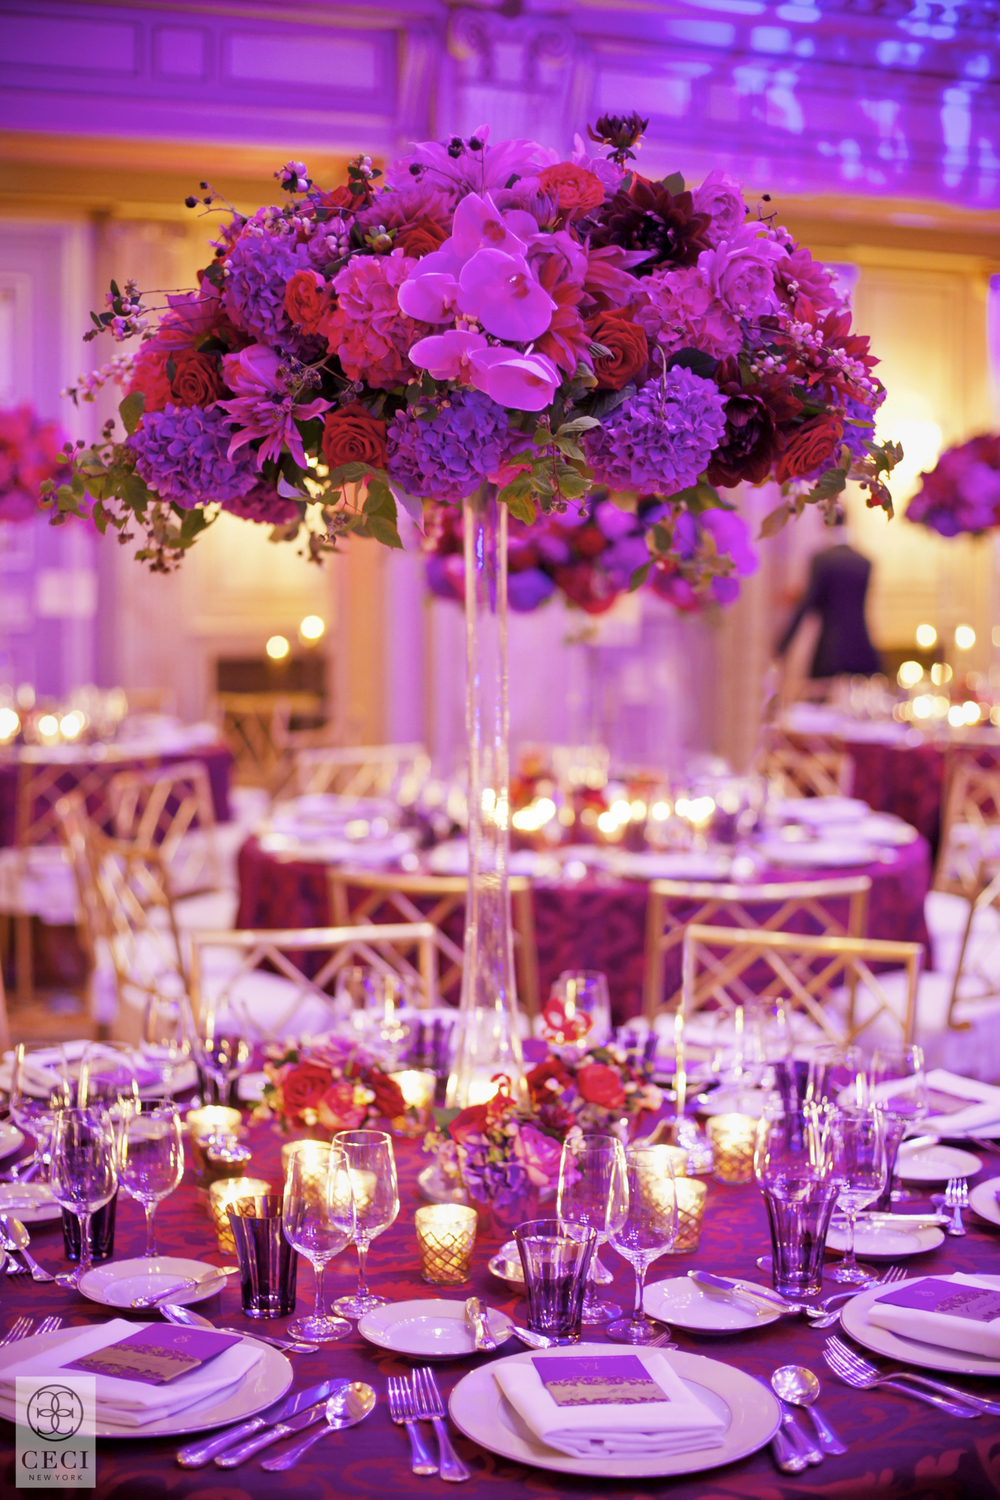 ceci_new_york_lucas_somoza_purple_regal_wediding_birthday_commitment_ceremony_gold-16.jpg